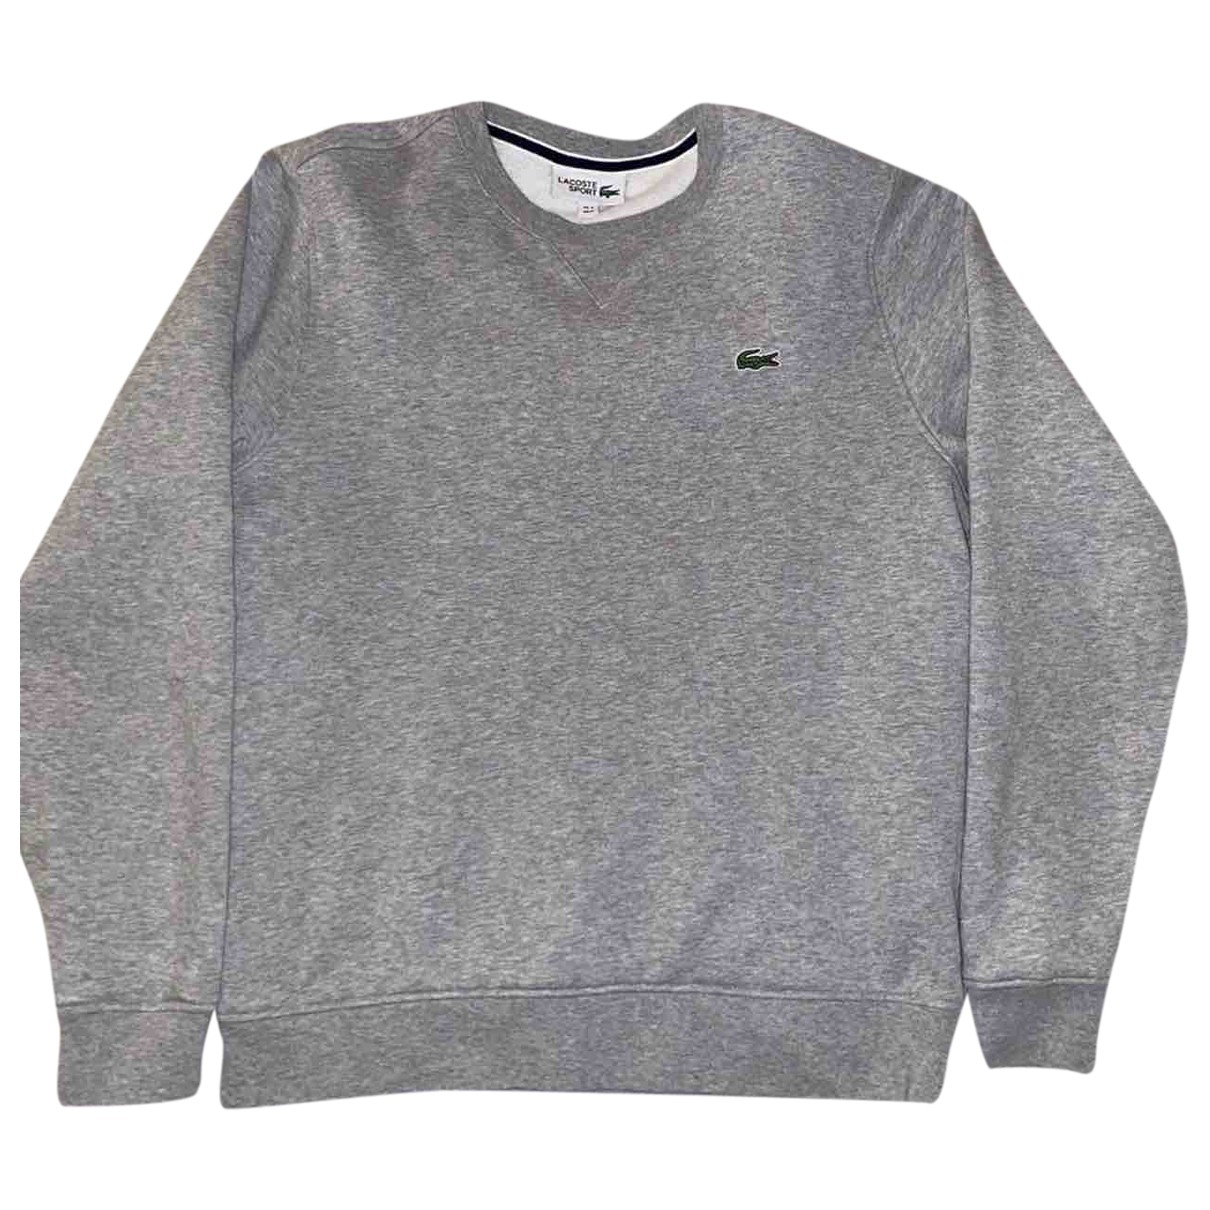 Lacoste \N Grey Cotton Knitwear & Sweatshirts for Men M International